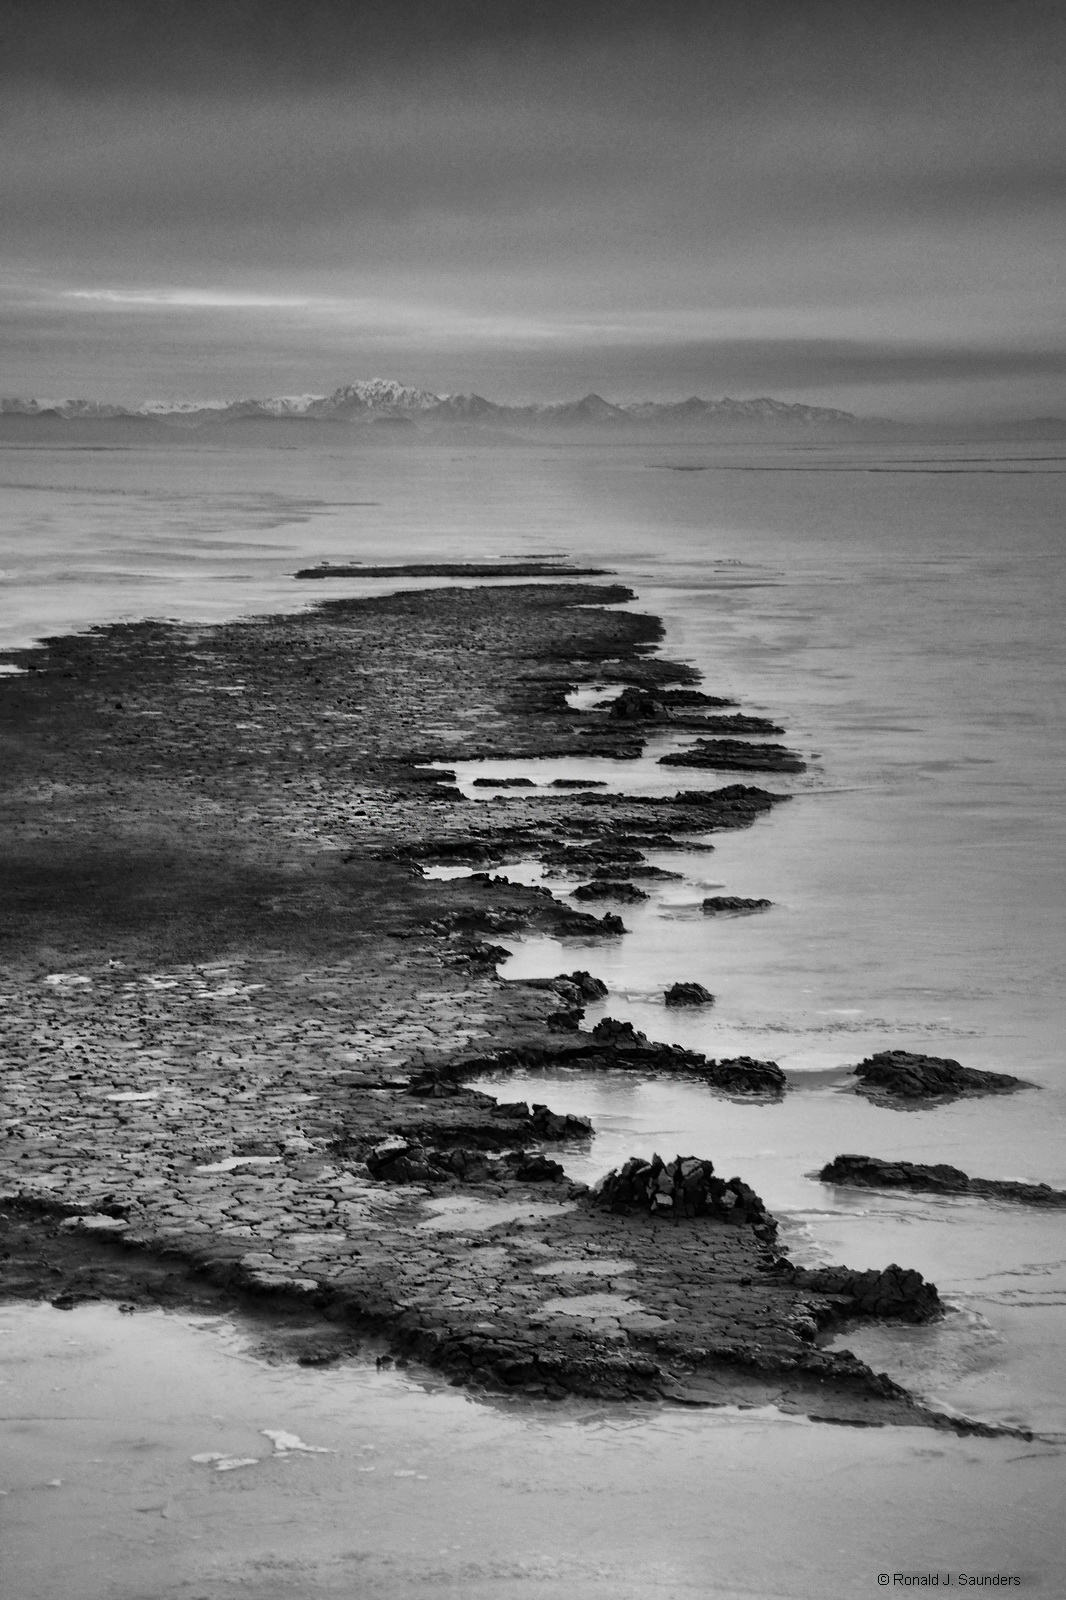 black rock, desert, ice, Nevada, Ronald, saunders, Ronald j saunders, black and white, playa, sand, mud, ice,, photo